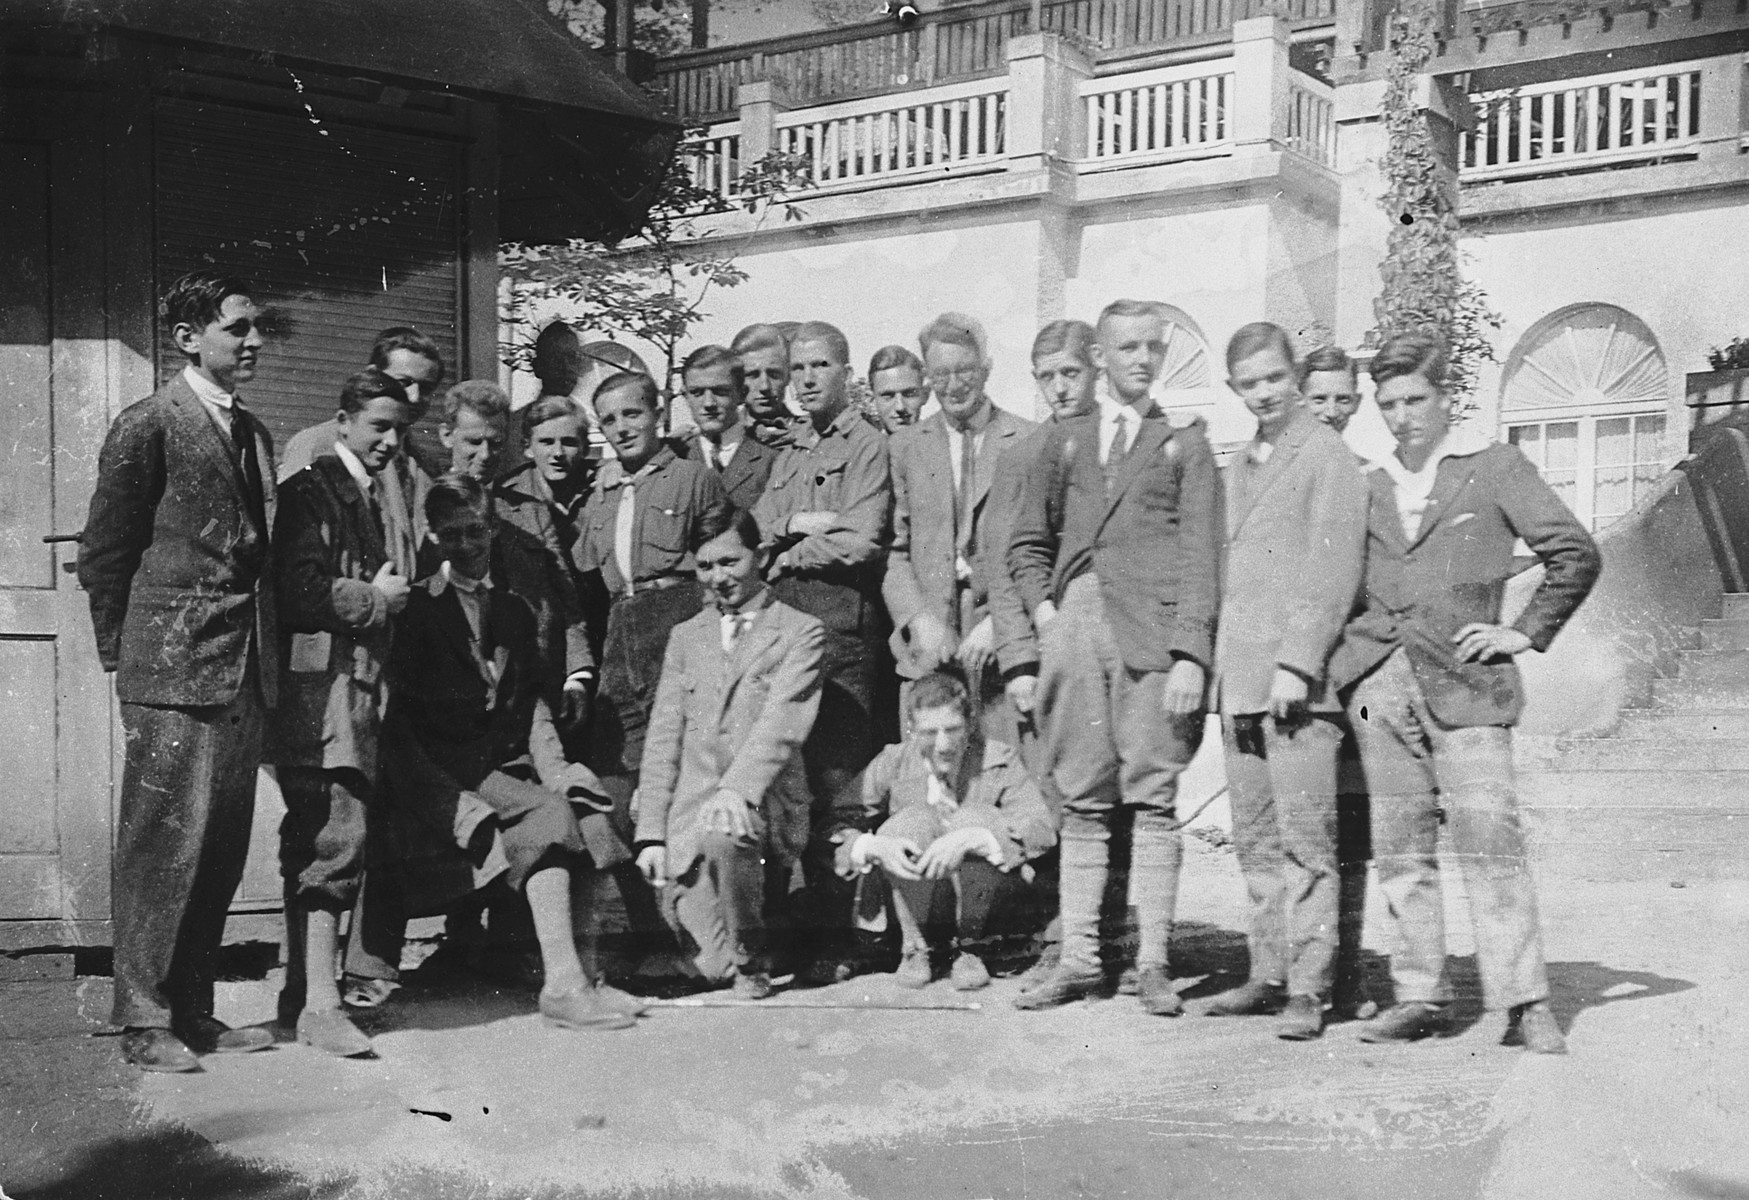 Group portrait of German students, both Jewish and non-Jewish.  Among those pictured is Gerhart Moritz Riegner (second from left?).  Werner Peter Kahn is pictured, standing 6th from the right (blurred).